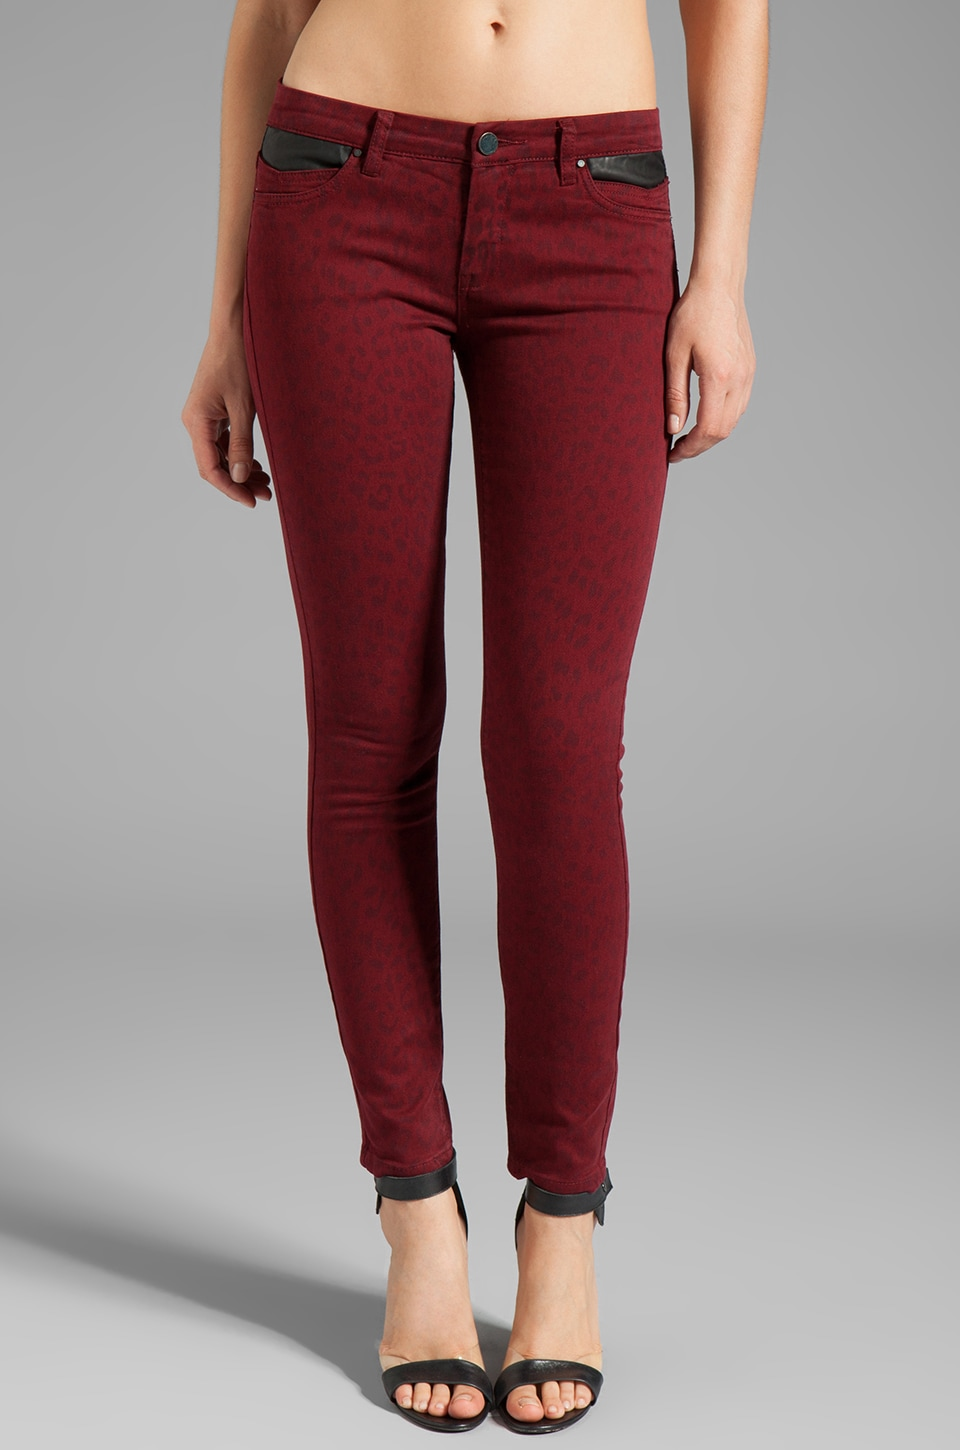 BLANKNYC Skinny in Animal Blood